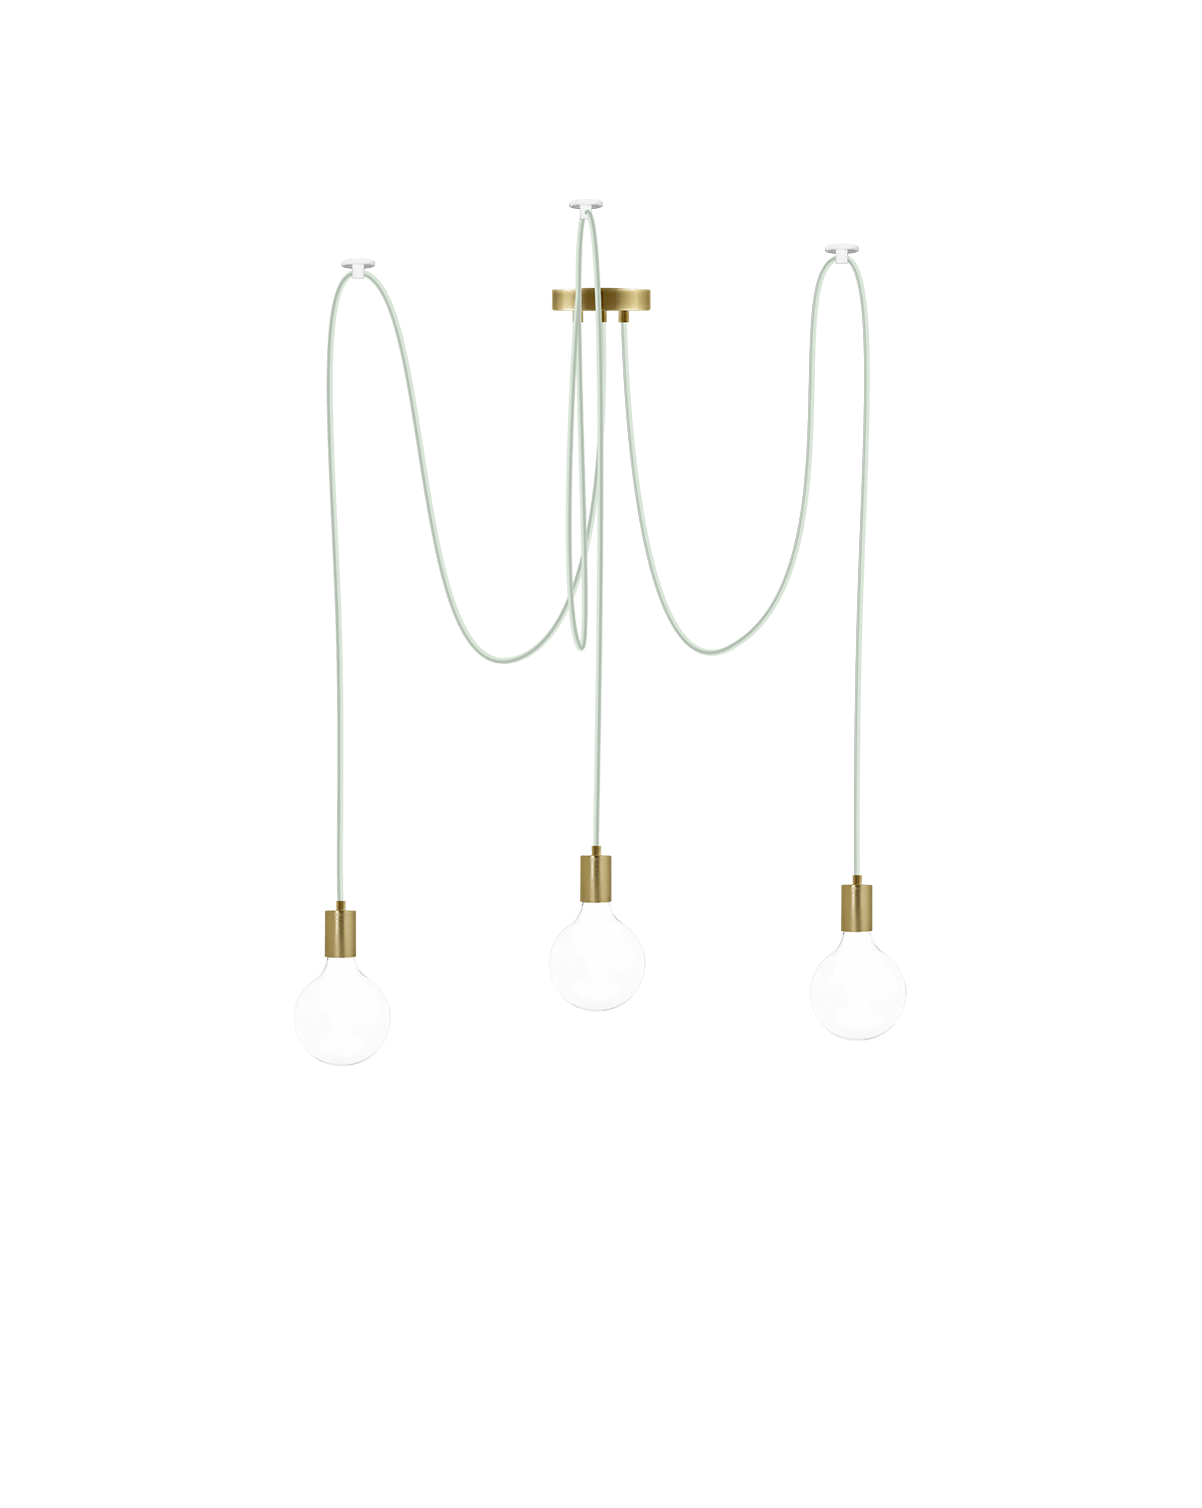 Swag Chandelier: Eucalyptus and Brass Hangout Lighting 3 Swag